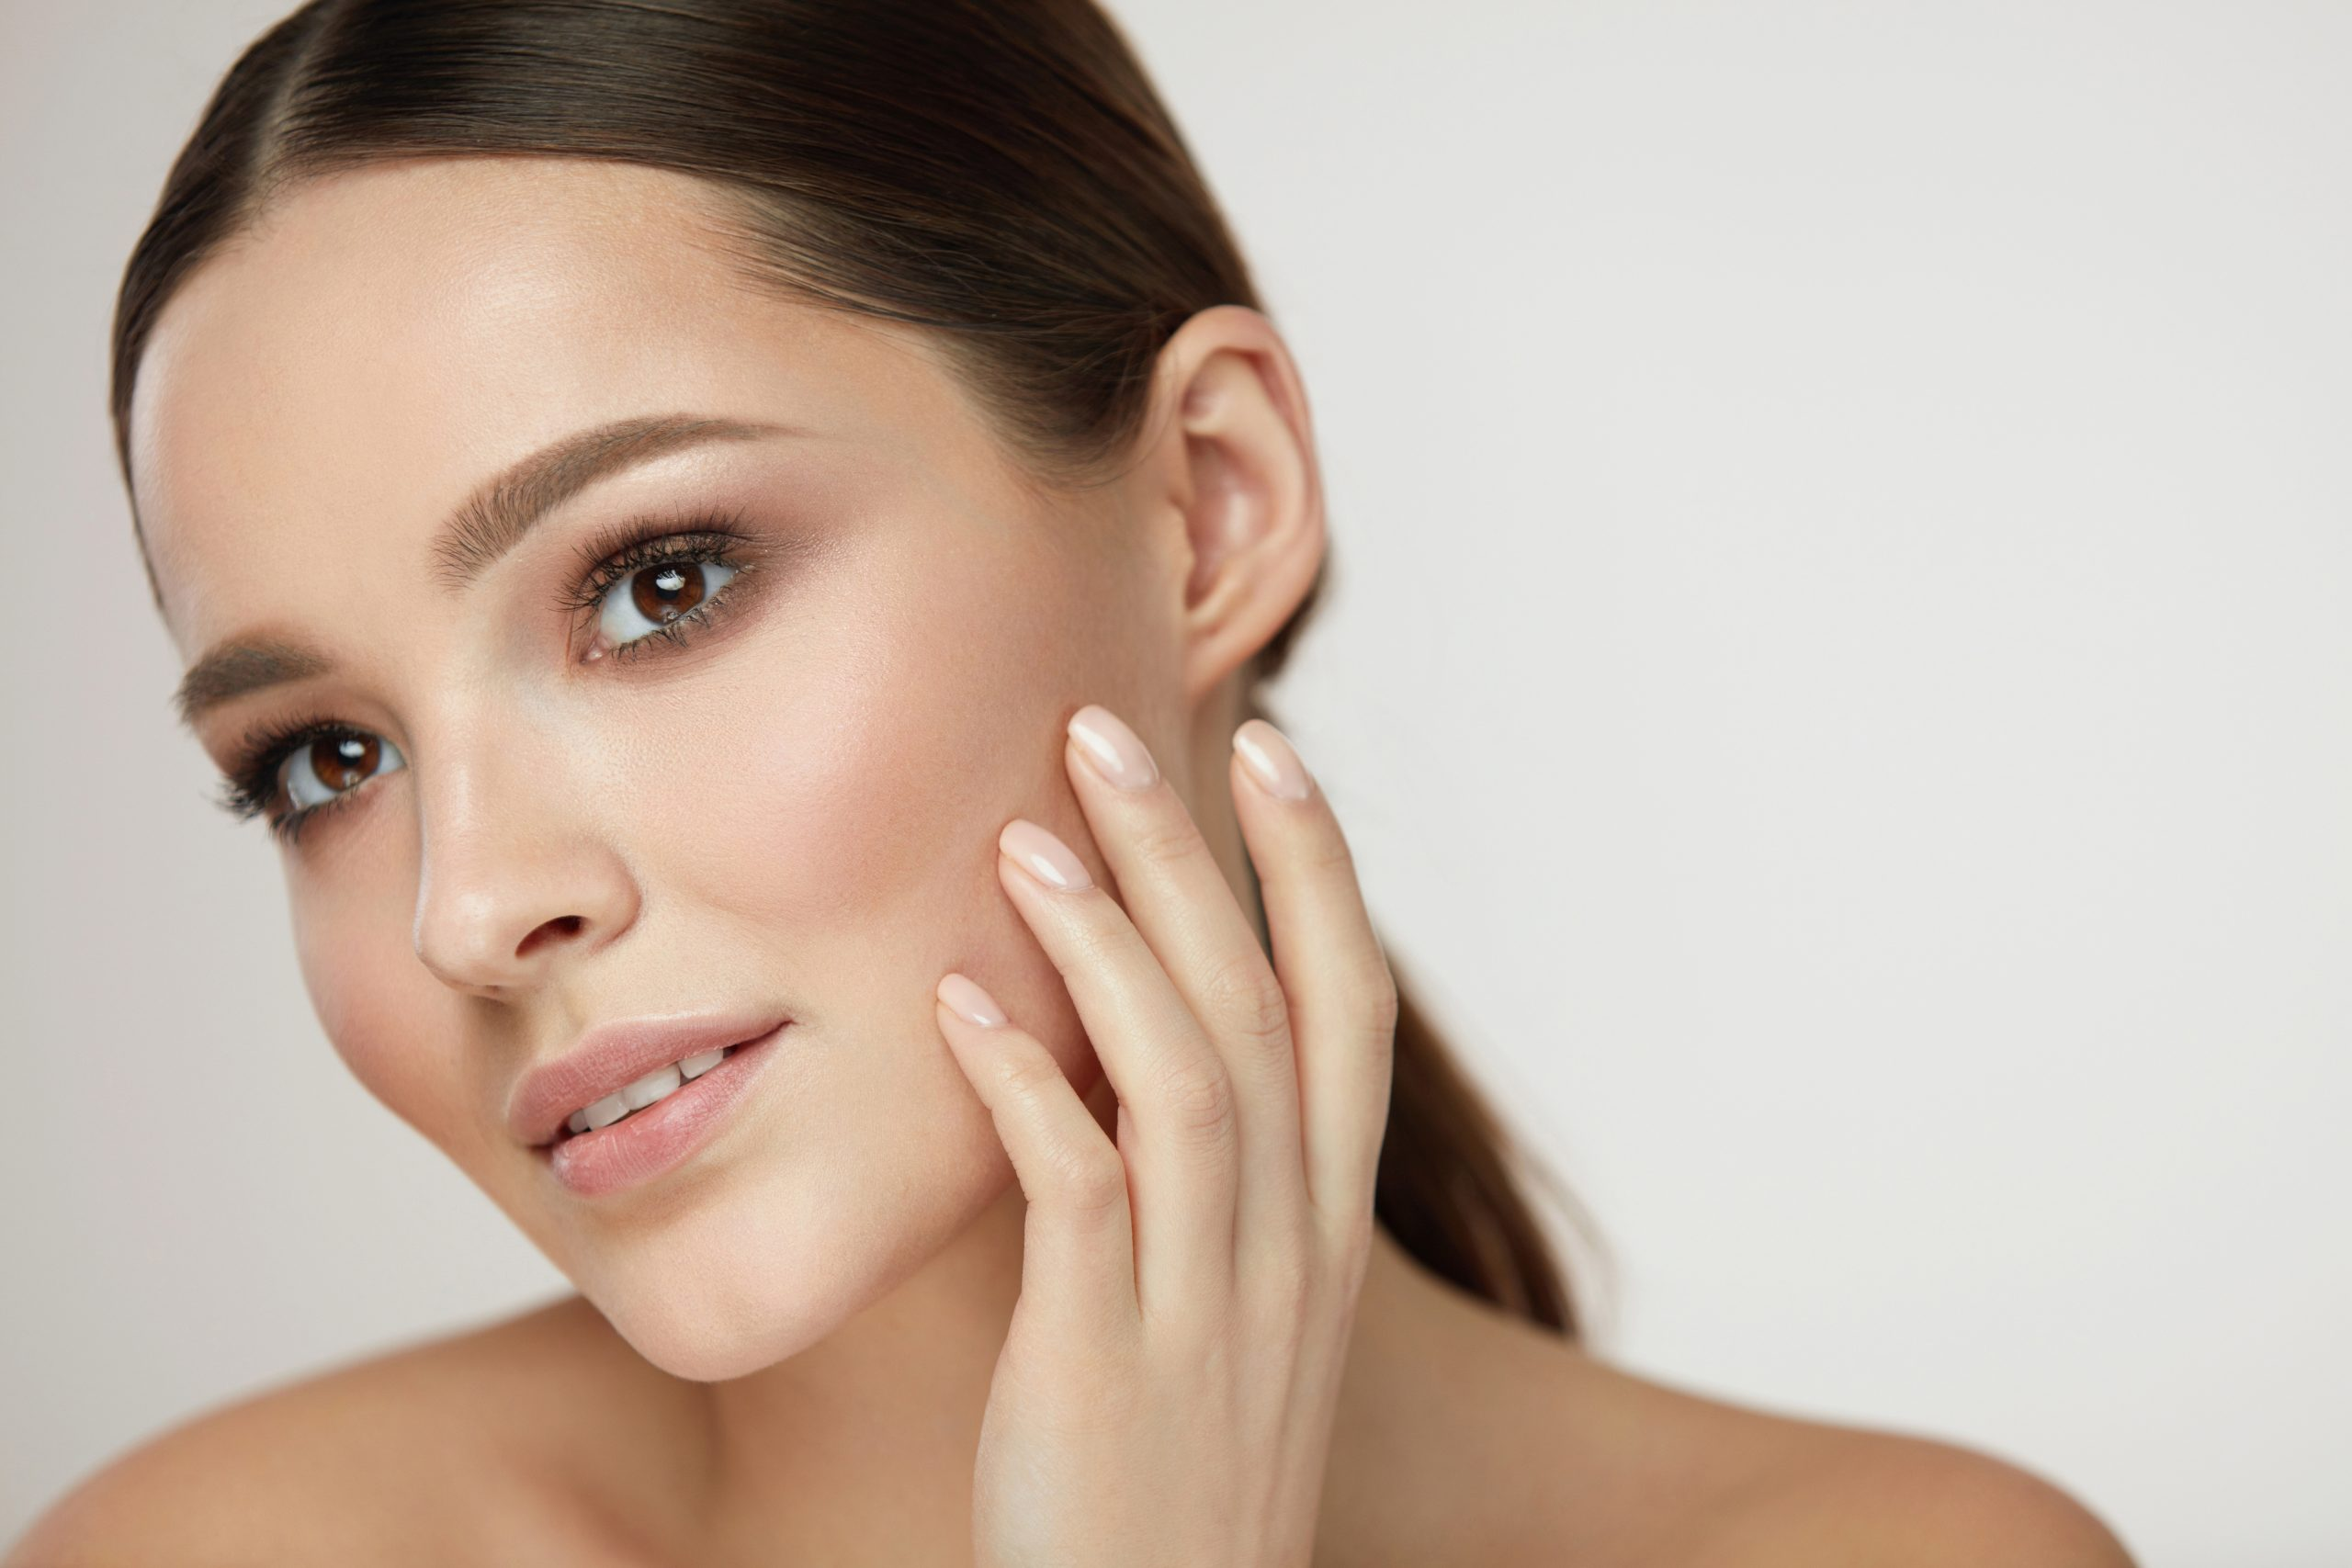 Woman with improved skin